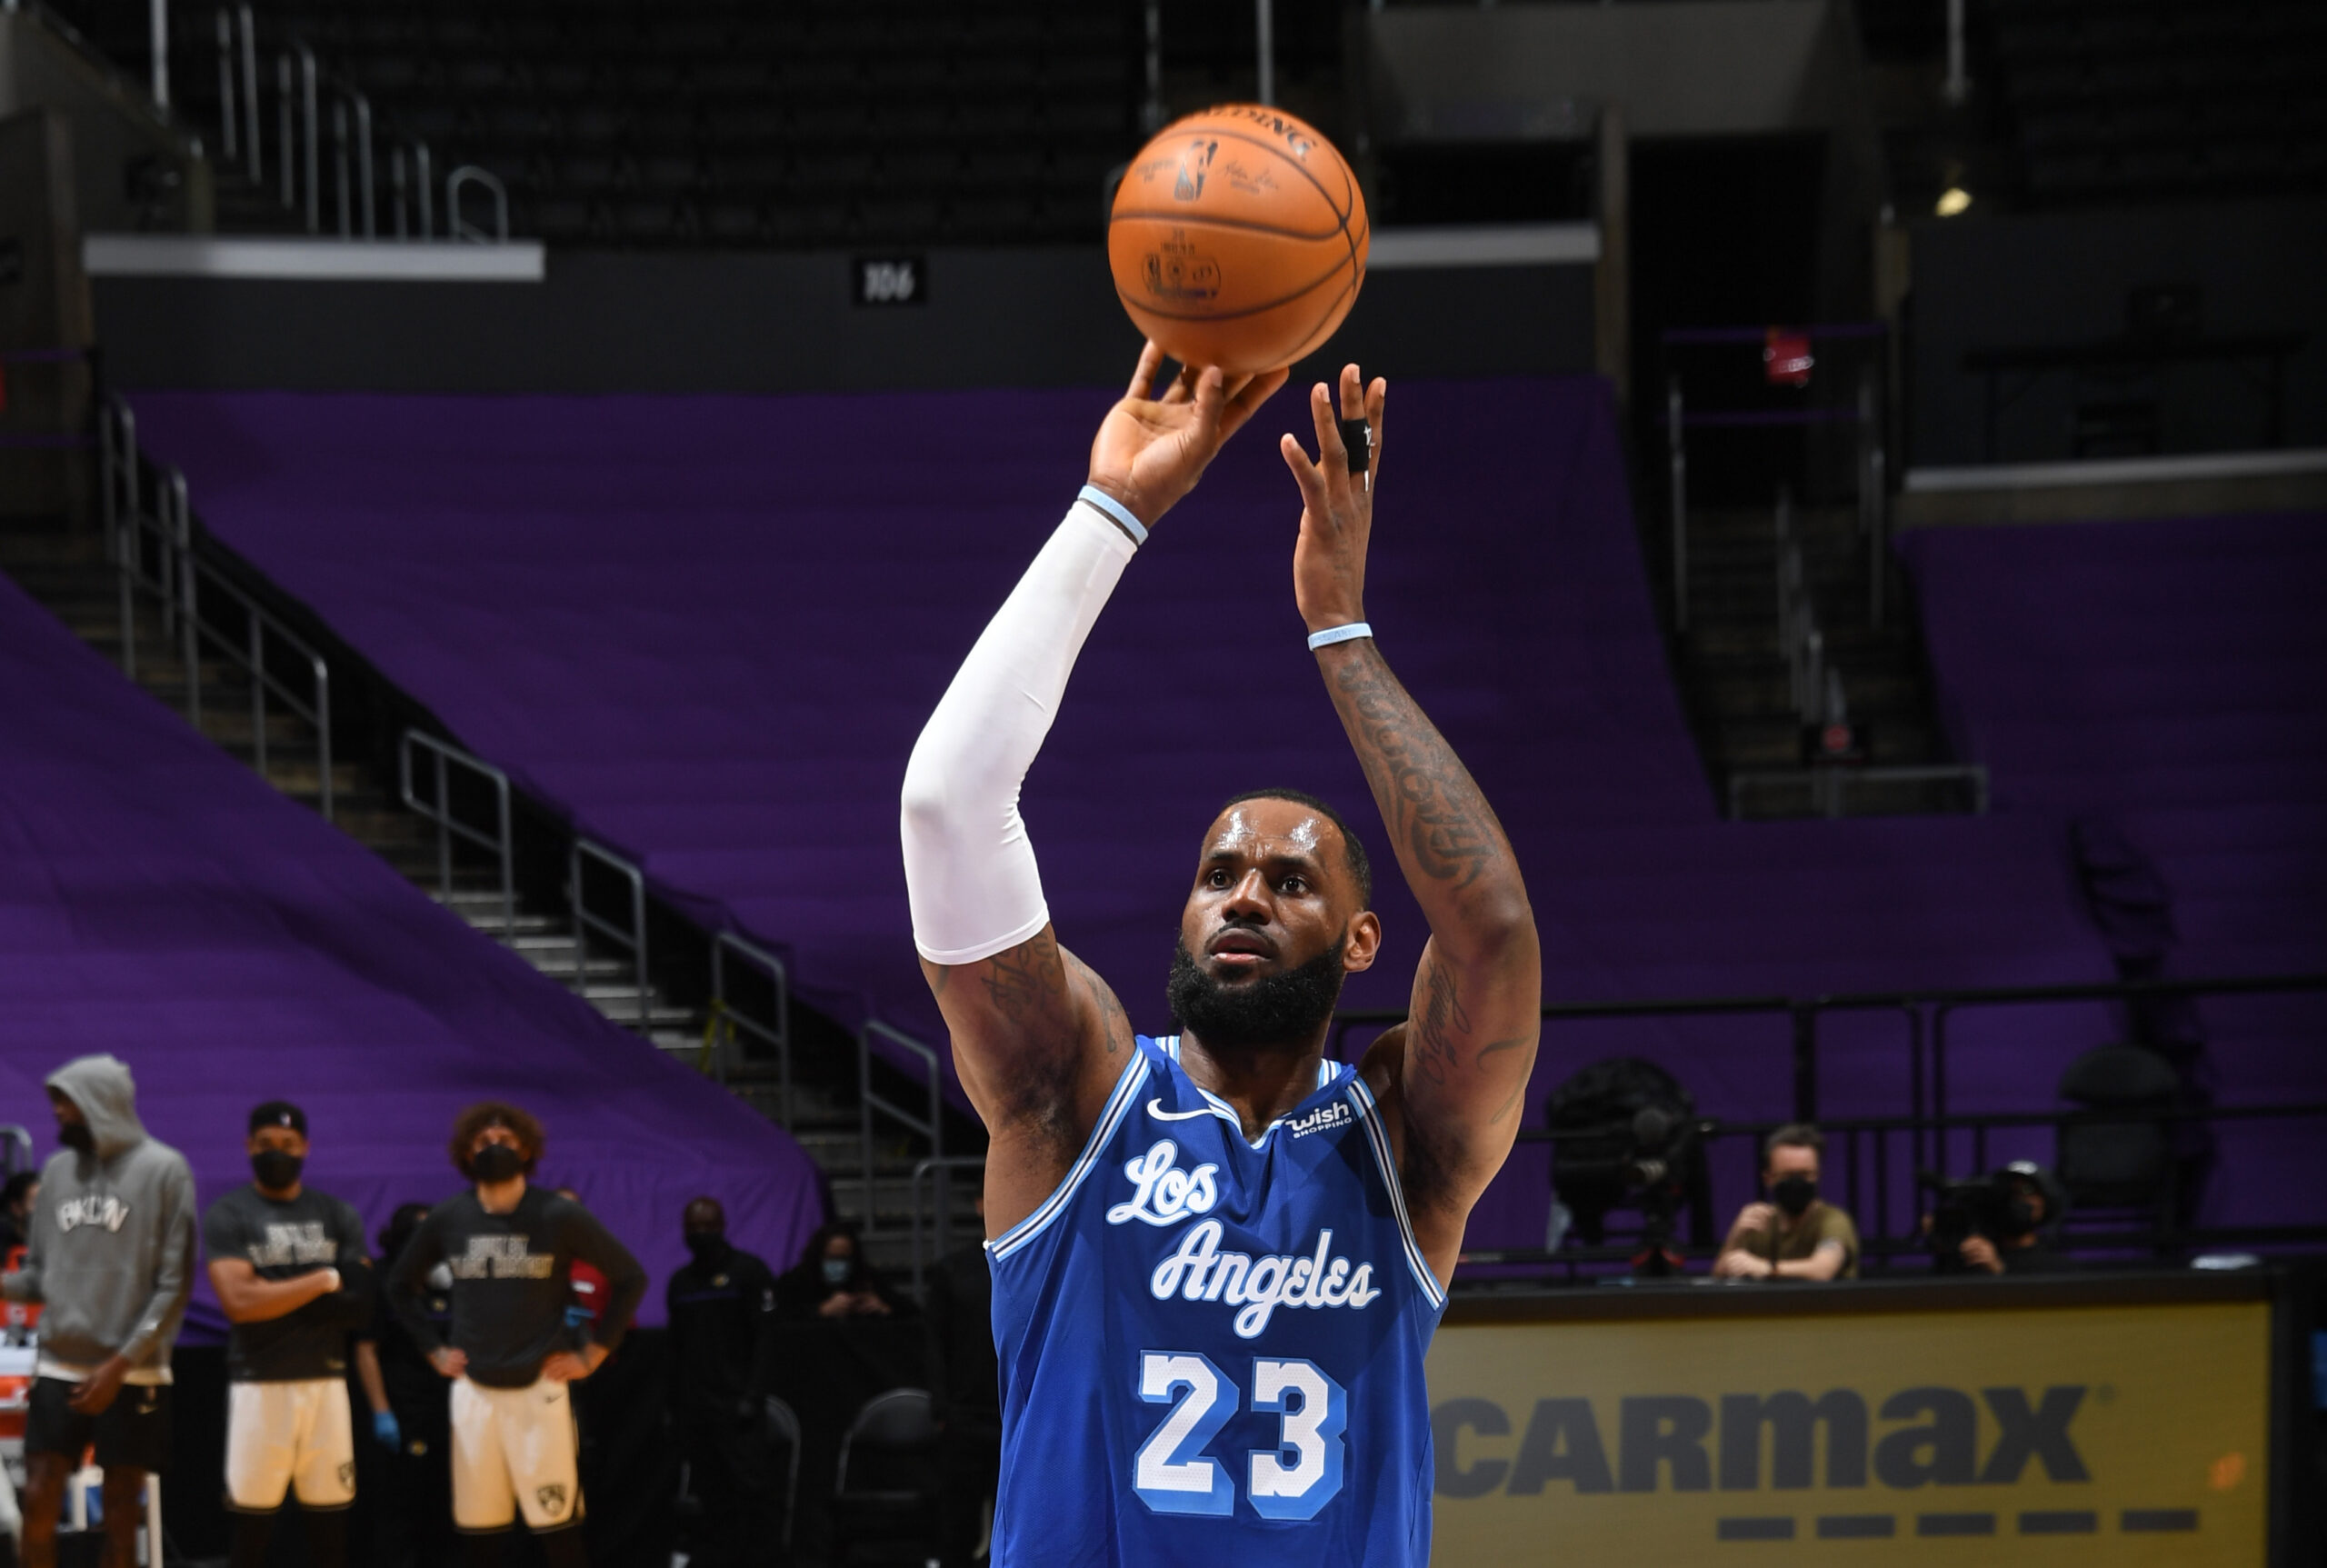 LeBron James joins Abdul-Jabbar, Malone as only players to reach 35,000 career points